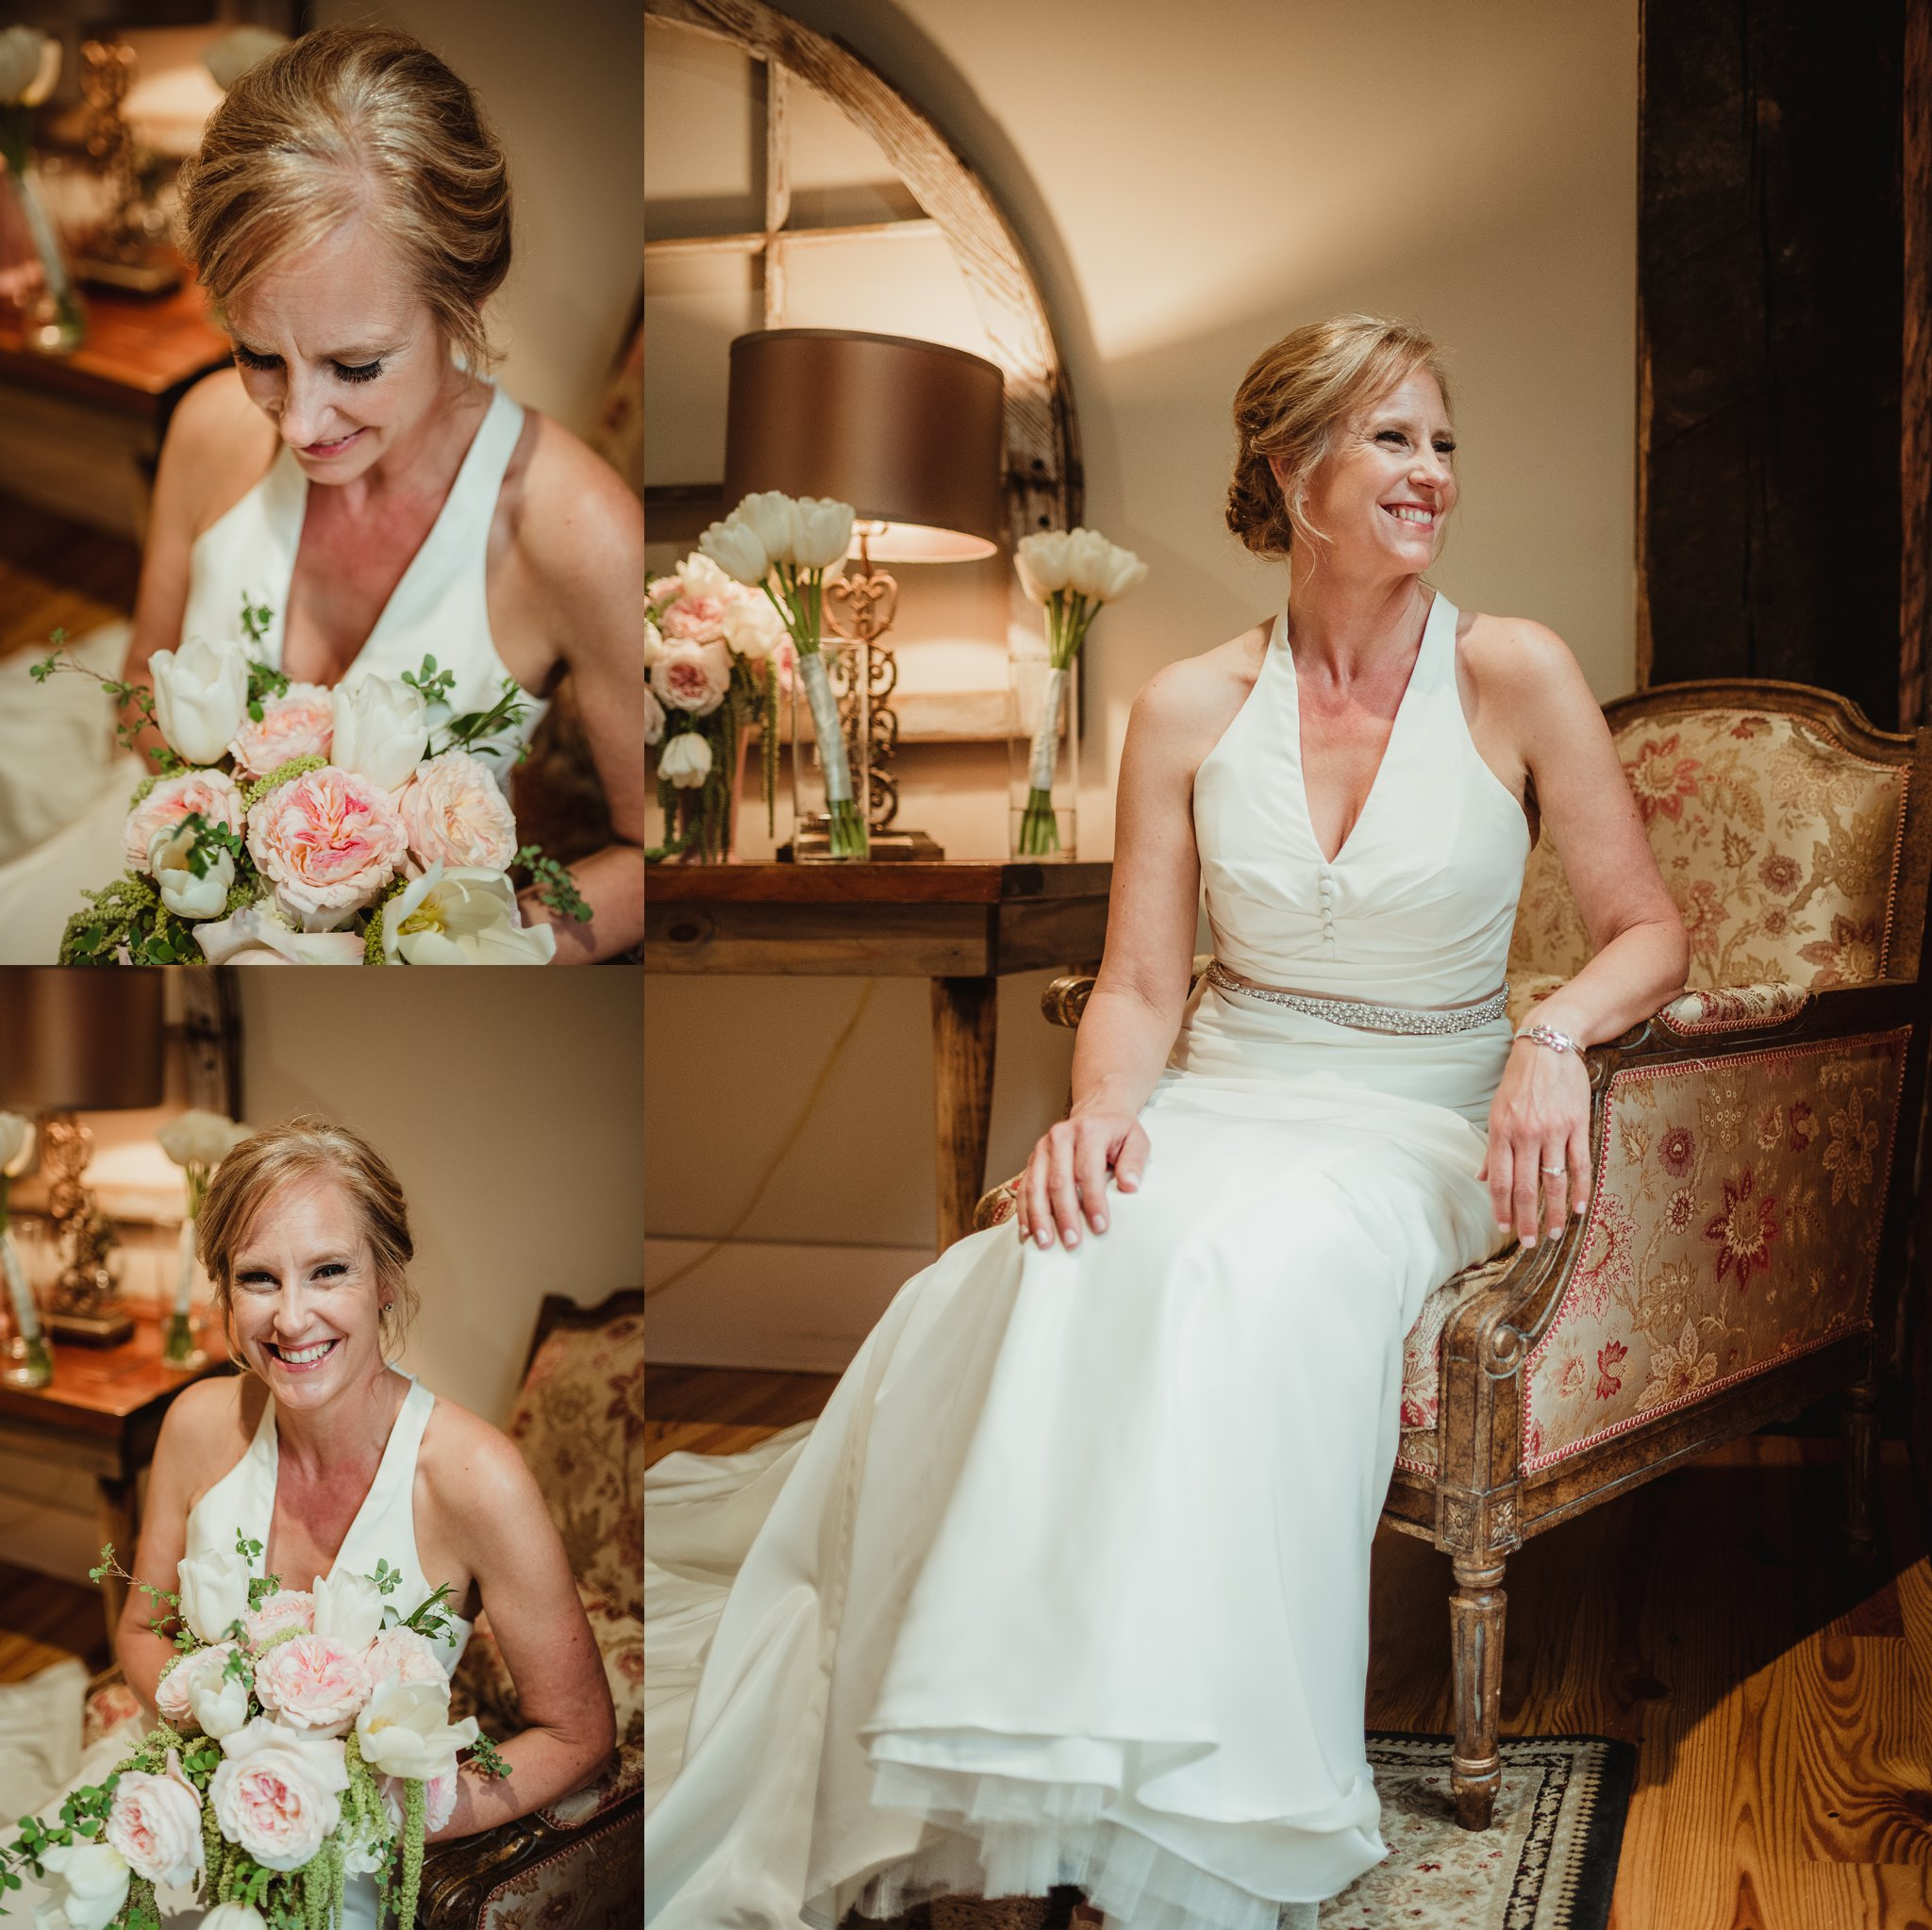 The bride got her portraits taken with Rose Trail Images before her wedding ceremony at Cross and Main in Youngsville, NC.